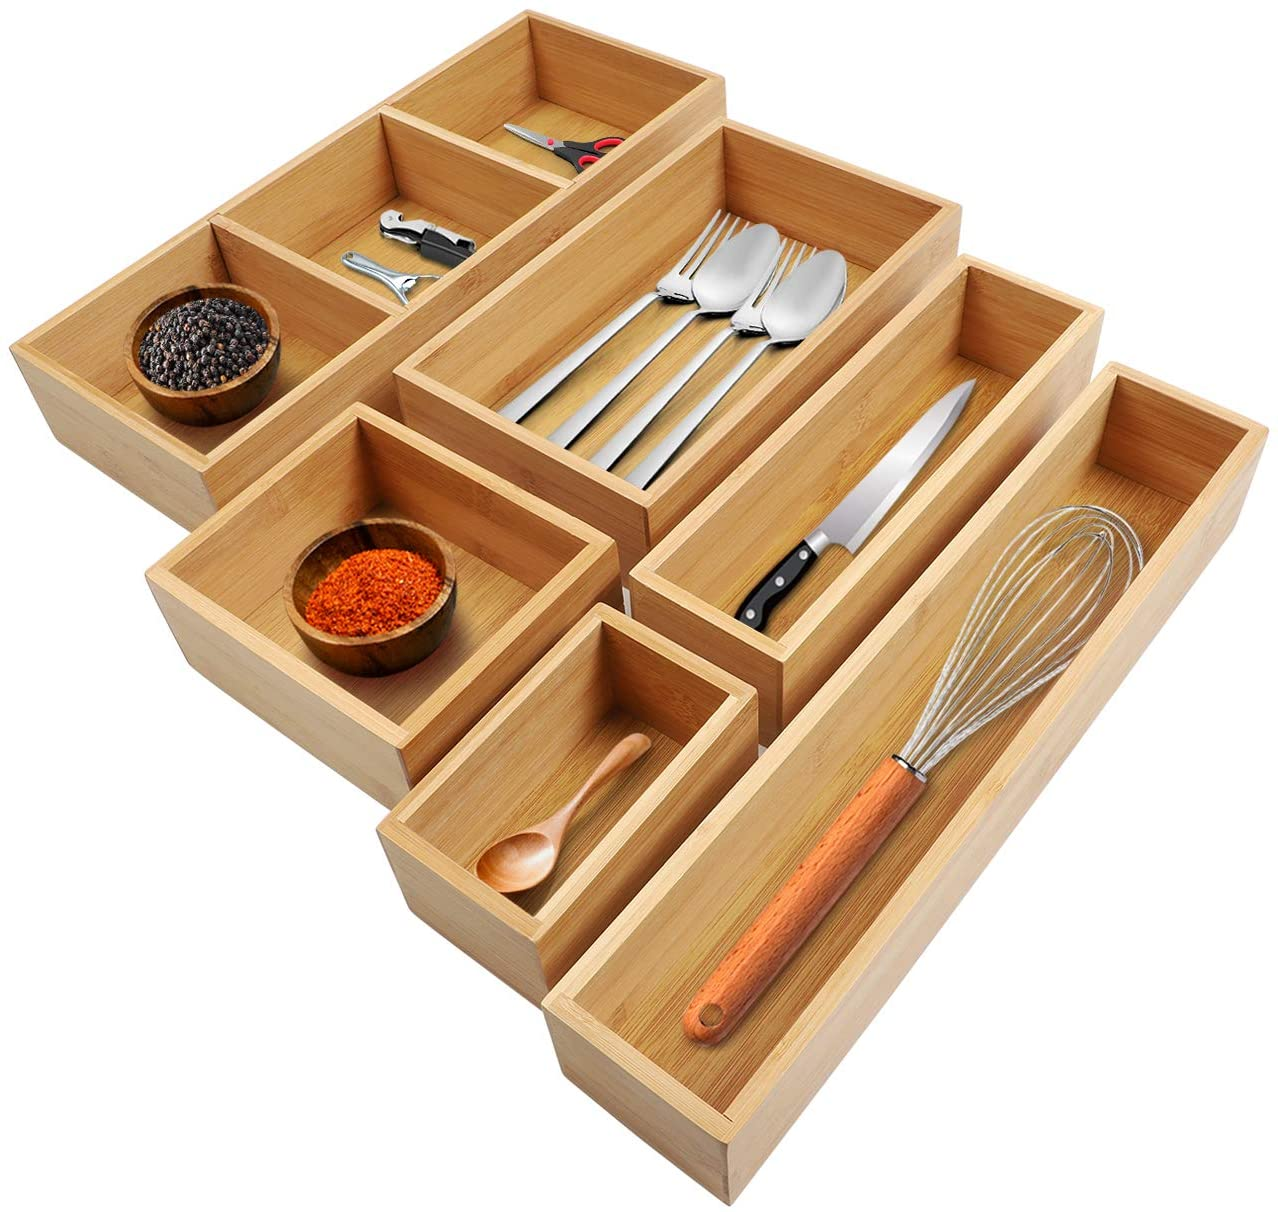 Simply Video, Bamboo Kitchen Drawer Divider